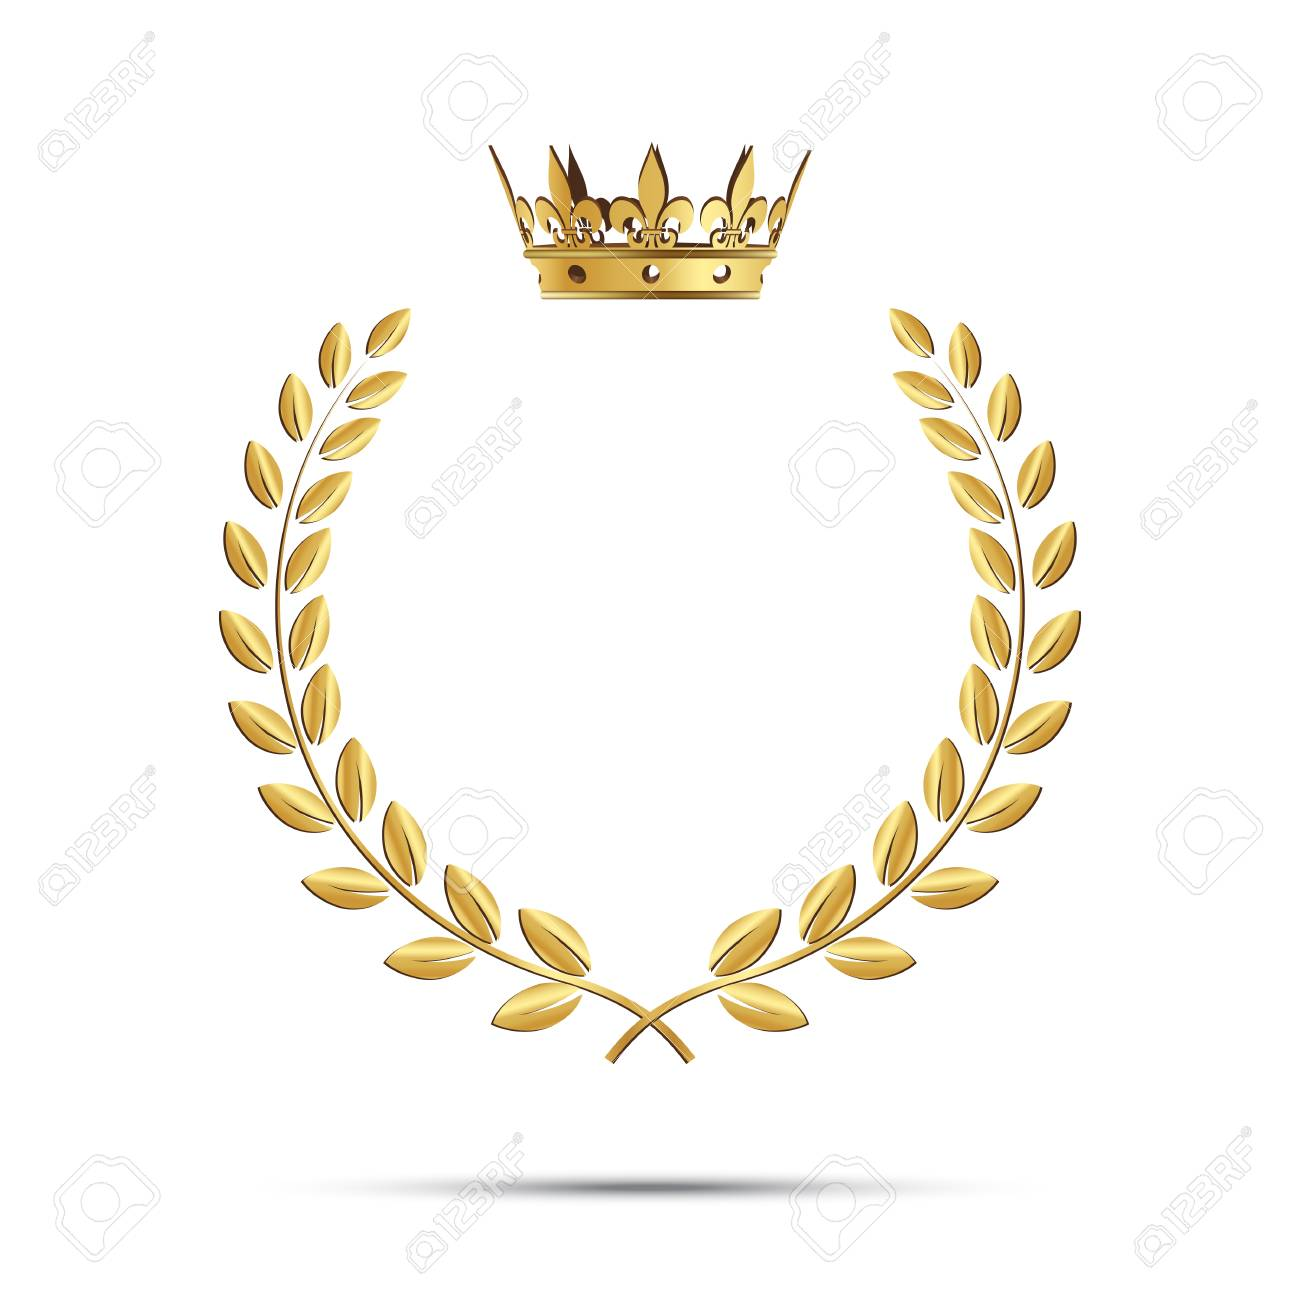 Isolated golden laurel wreath with crown. Vector illustration - 90041489